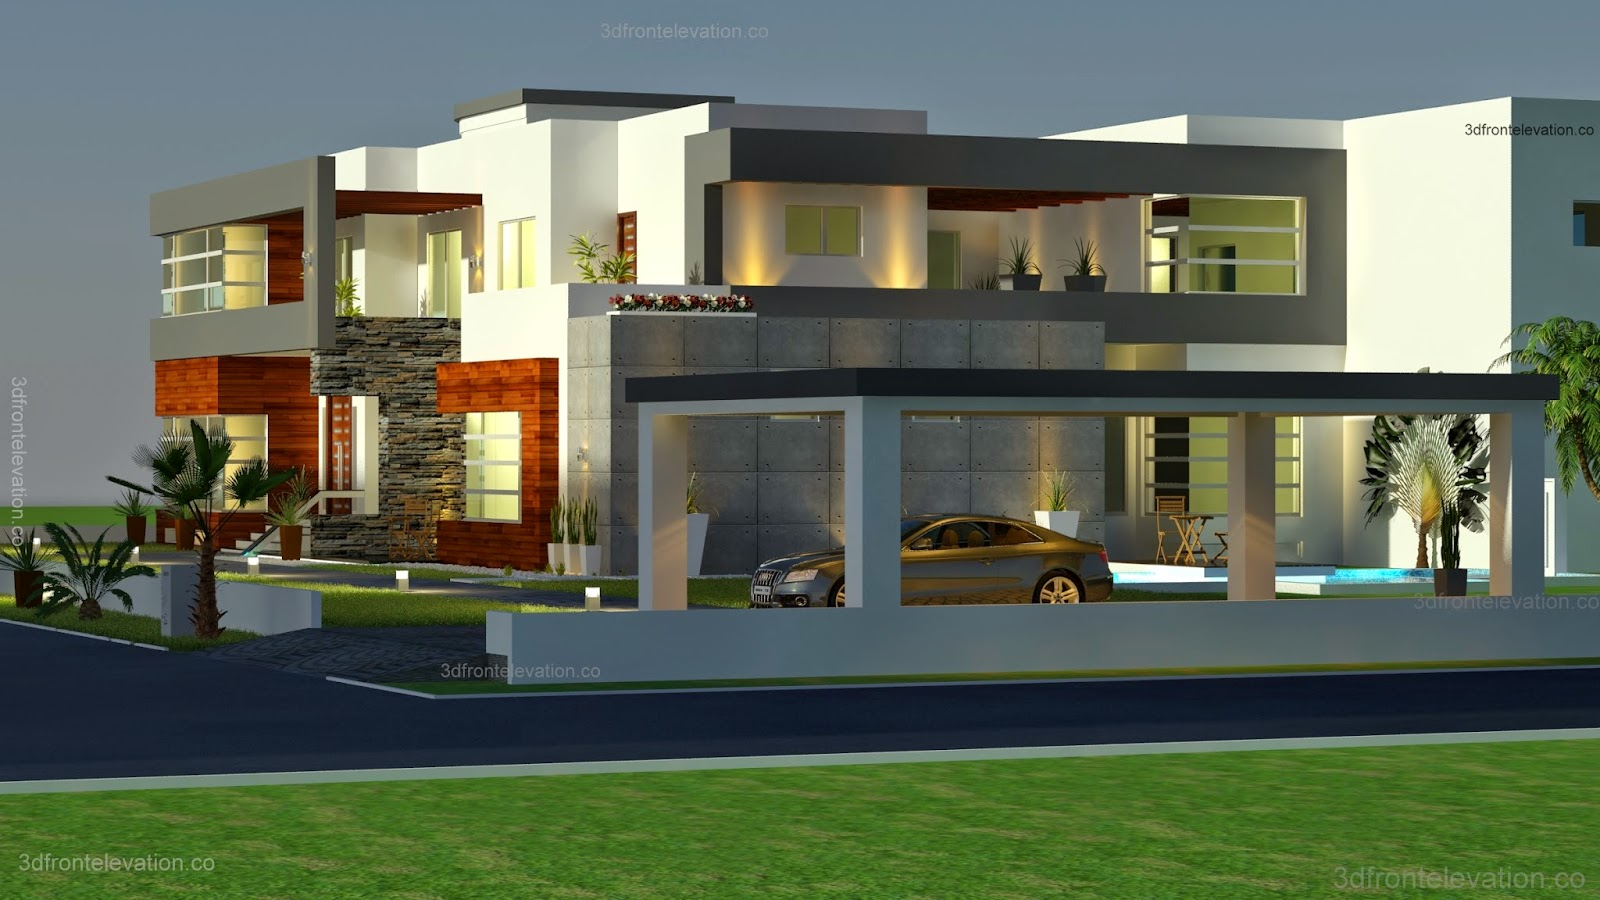 House Plans And Design Modern Bungalow House Plans Canada